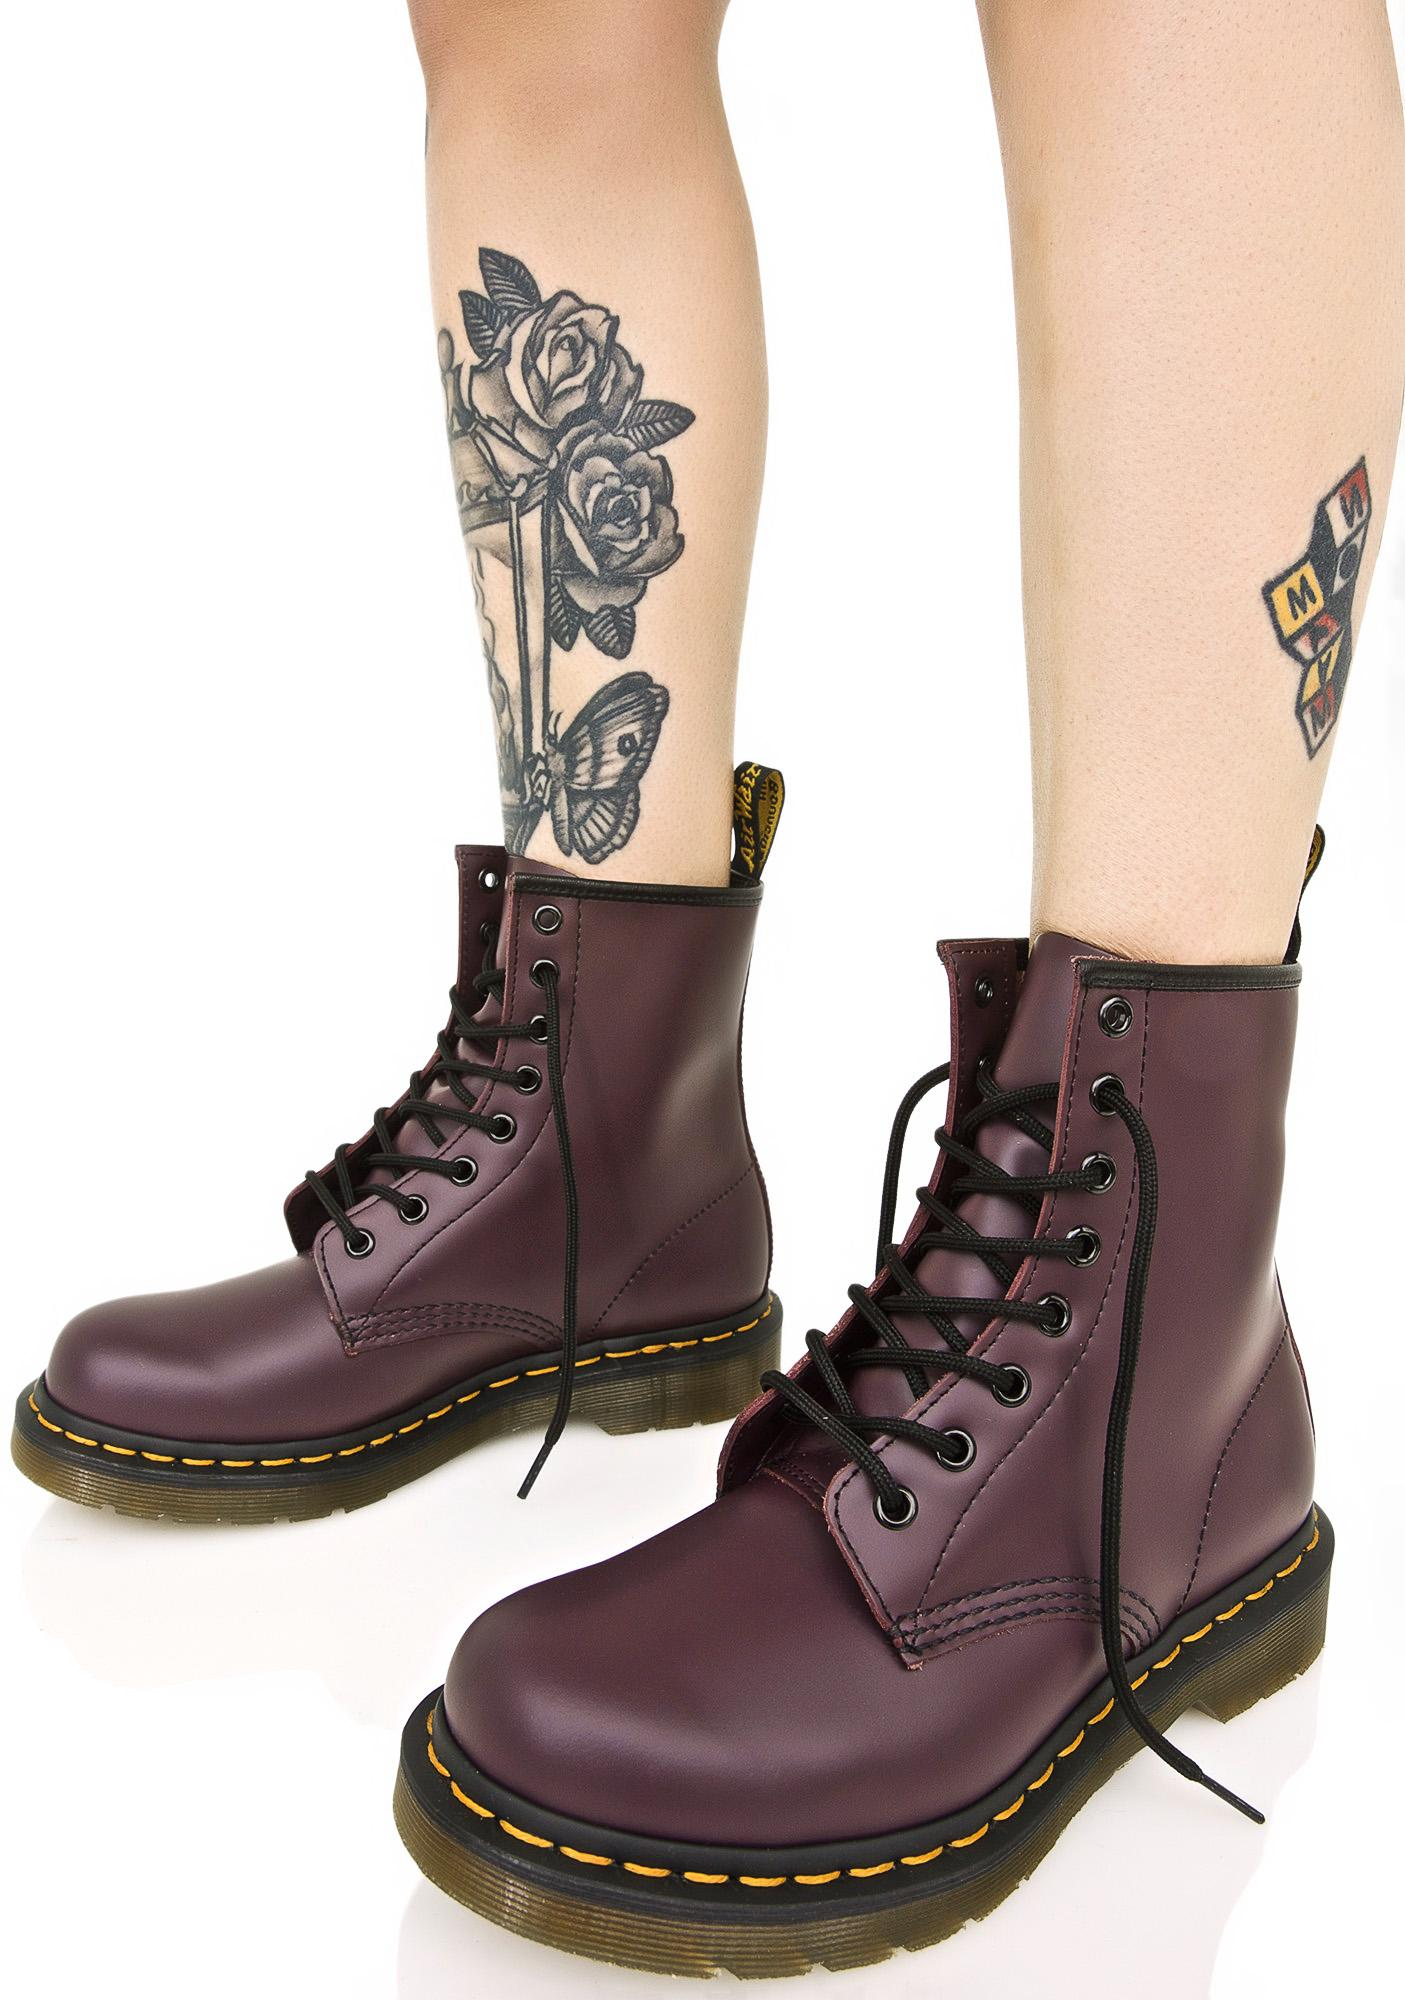 Royal Purple 1460 8 Eye Boots huge surprise for sale from china online the best store to get cheap fashion Style 9H6bzUrJGh